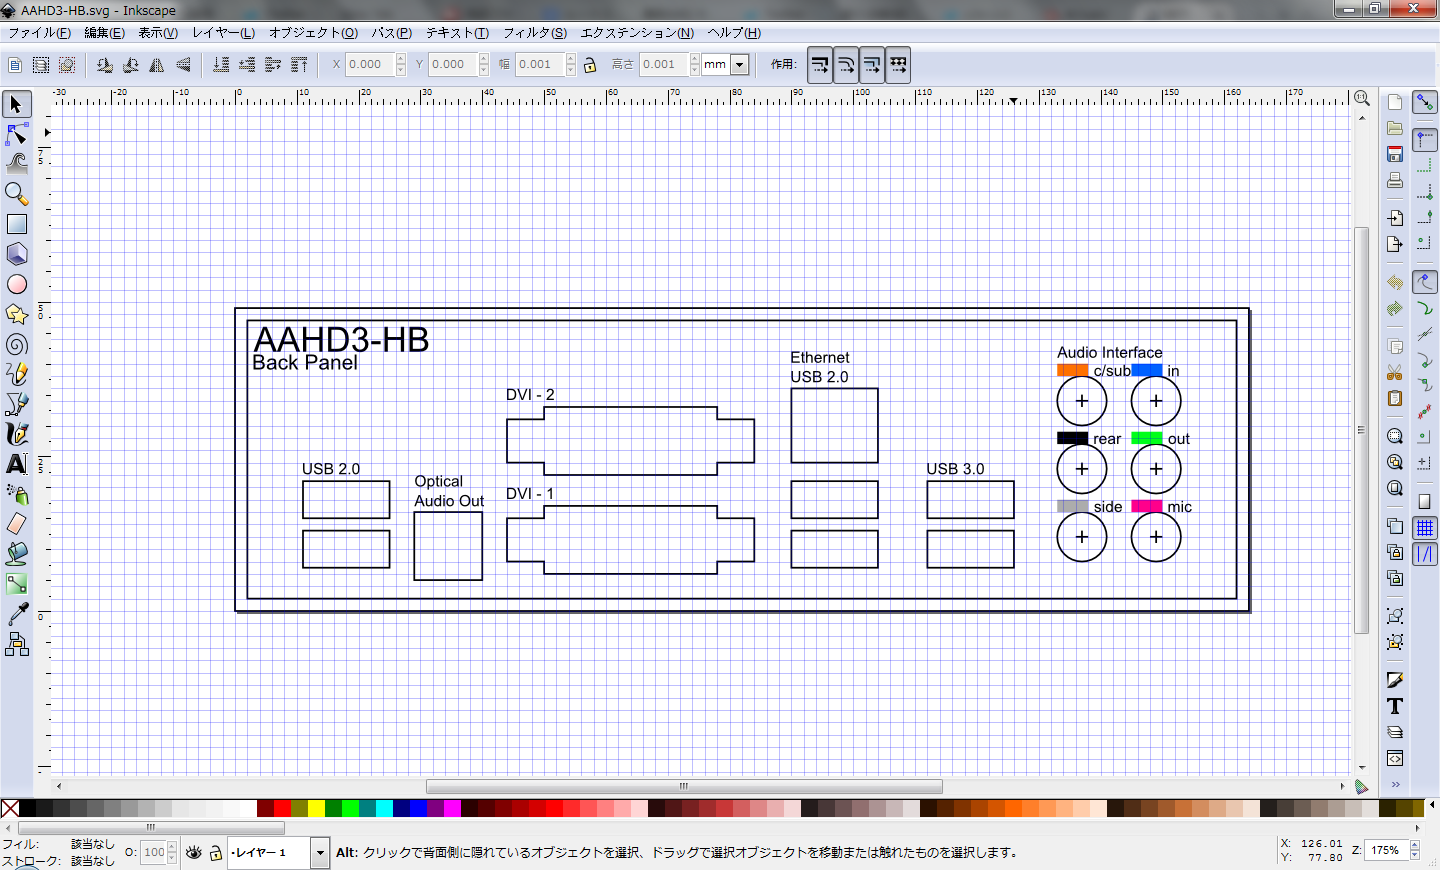 AAHD3-HB inkscape